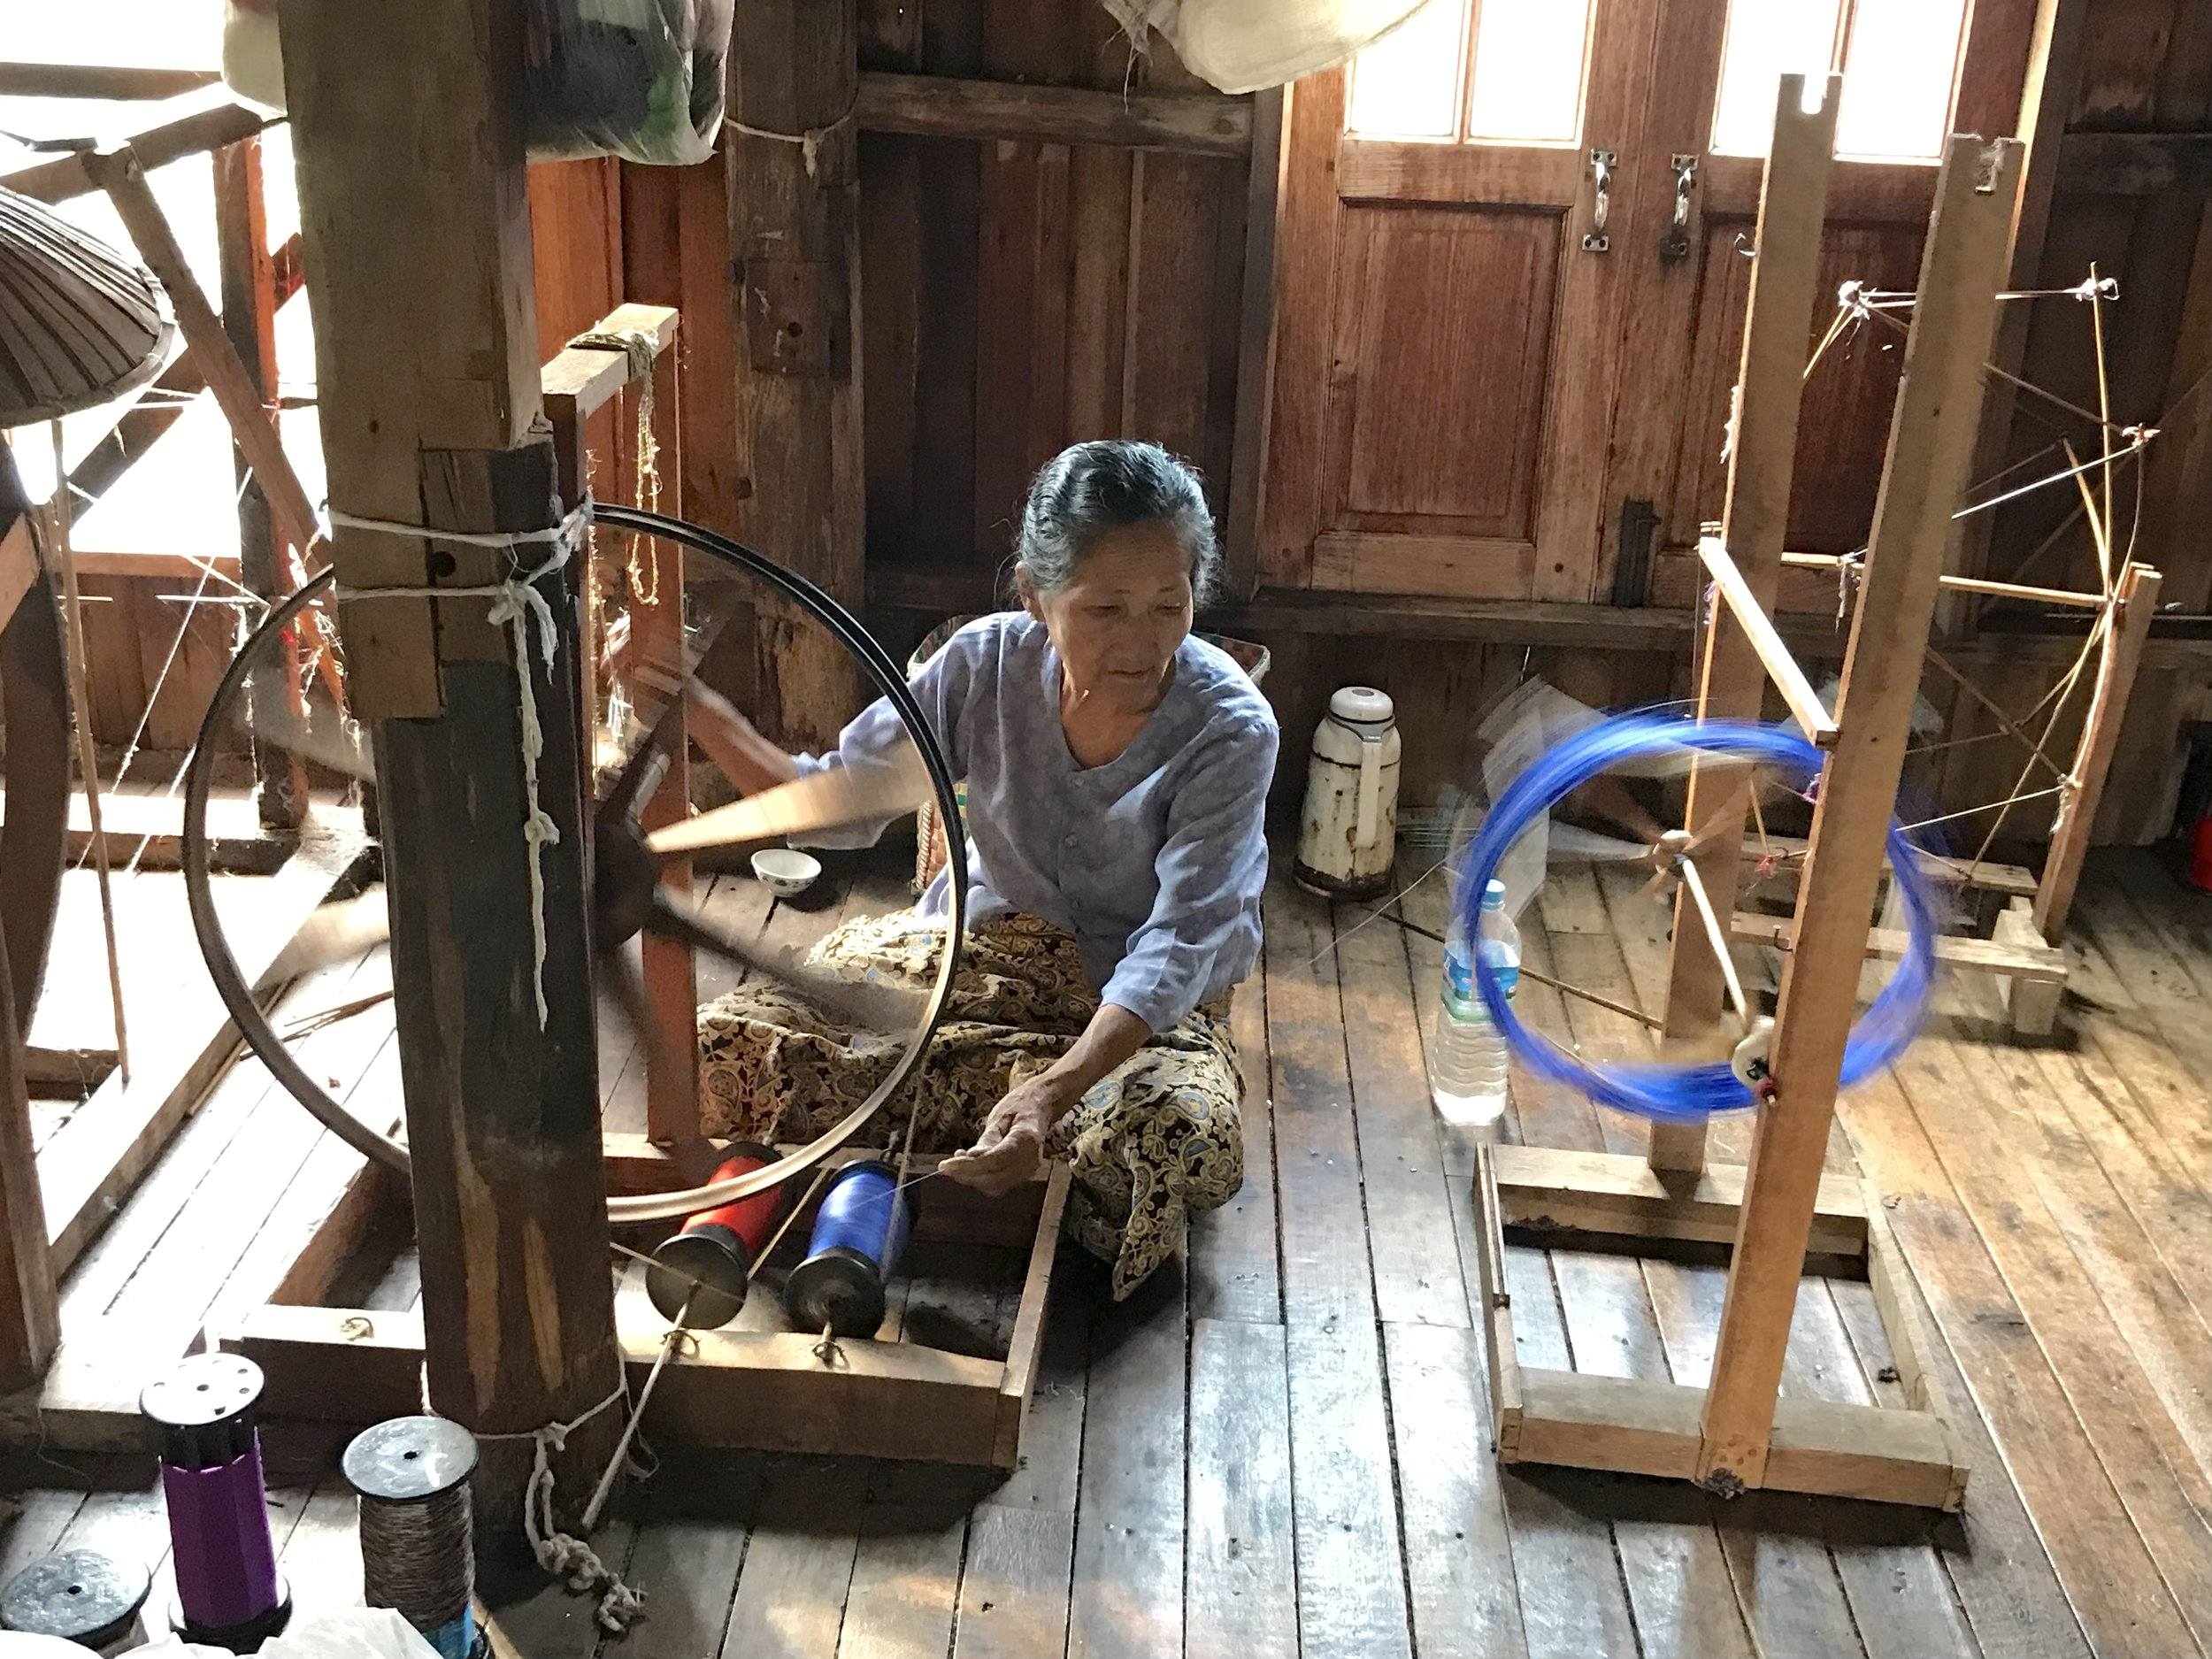 Lotus thread spinning